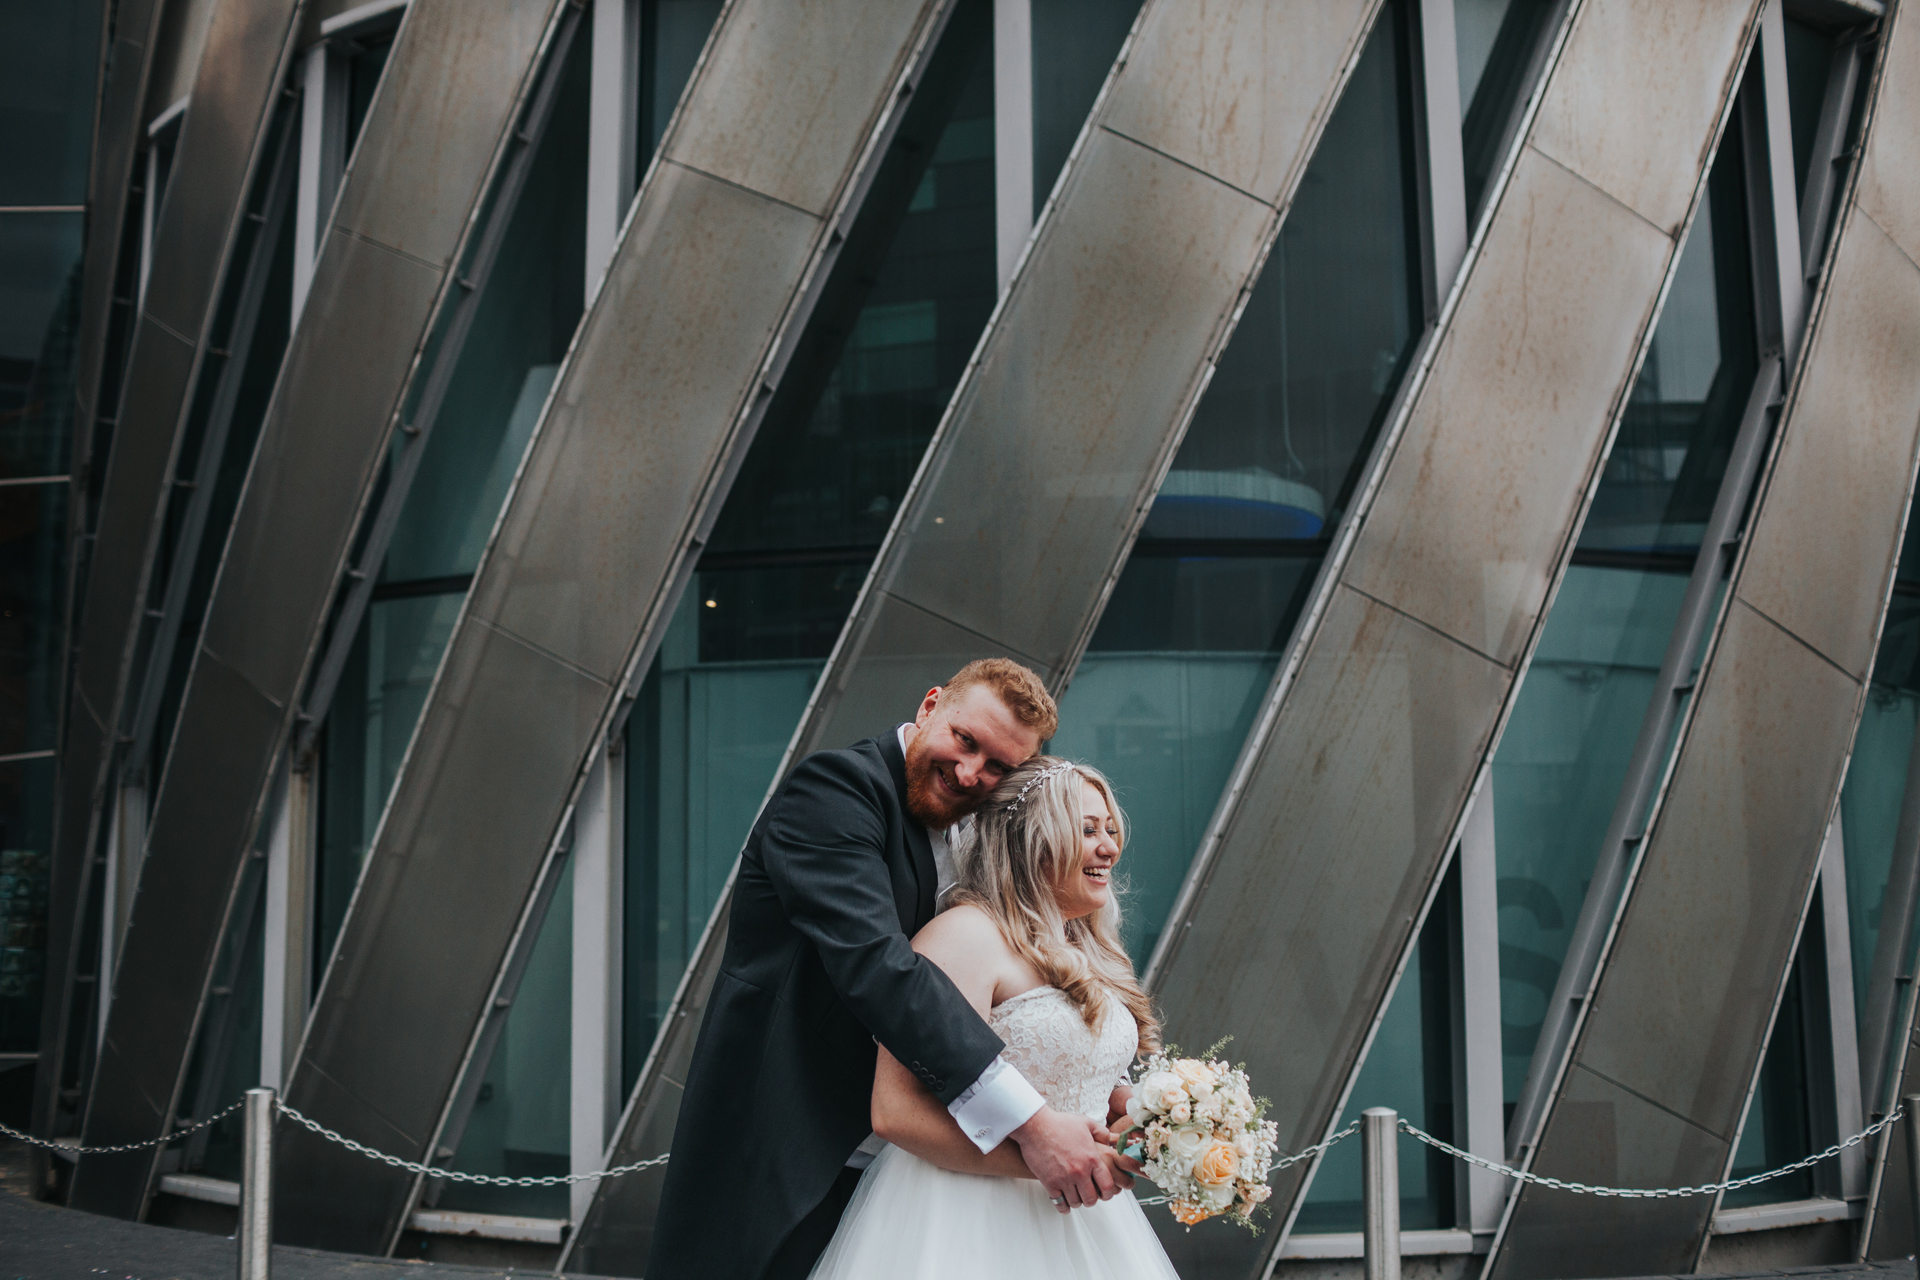 Colour photo of groom hugging bride from behind.